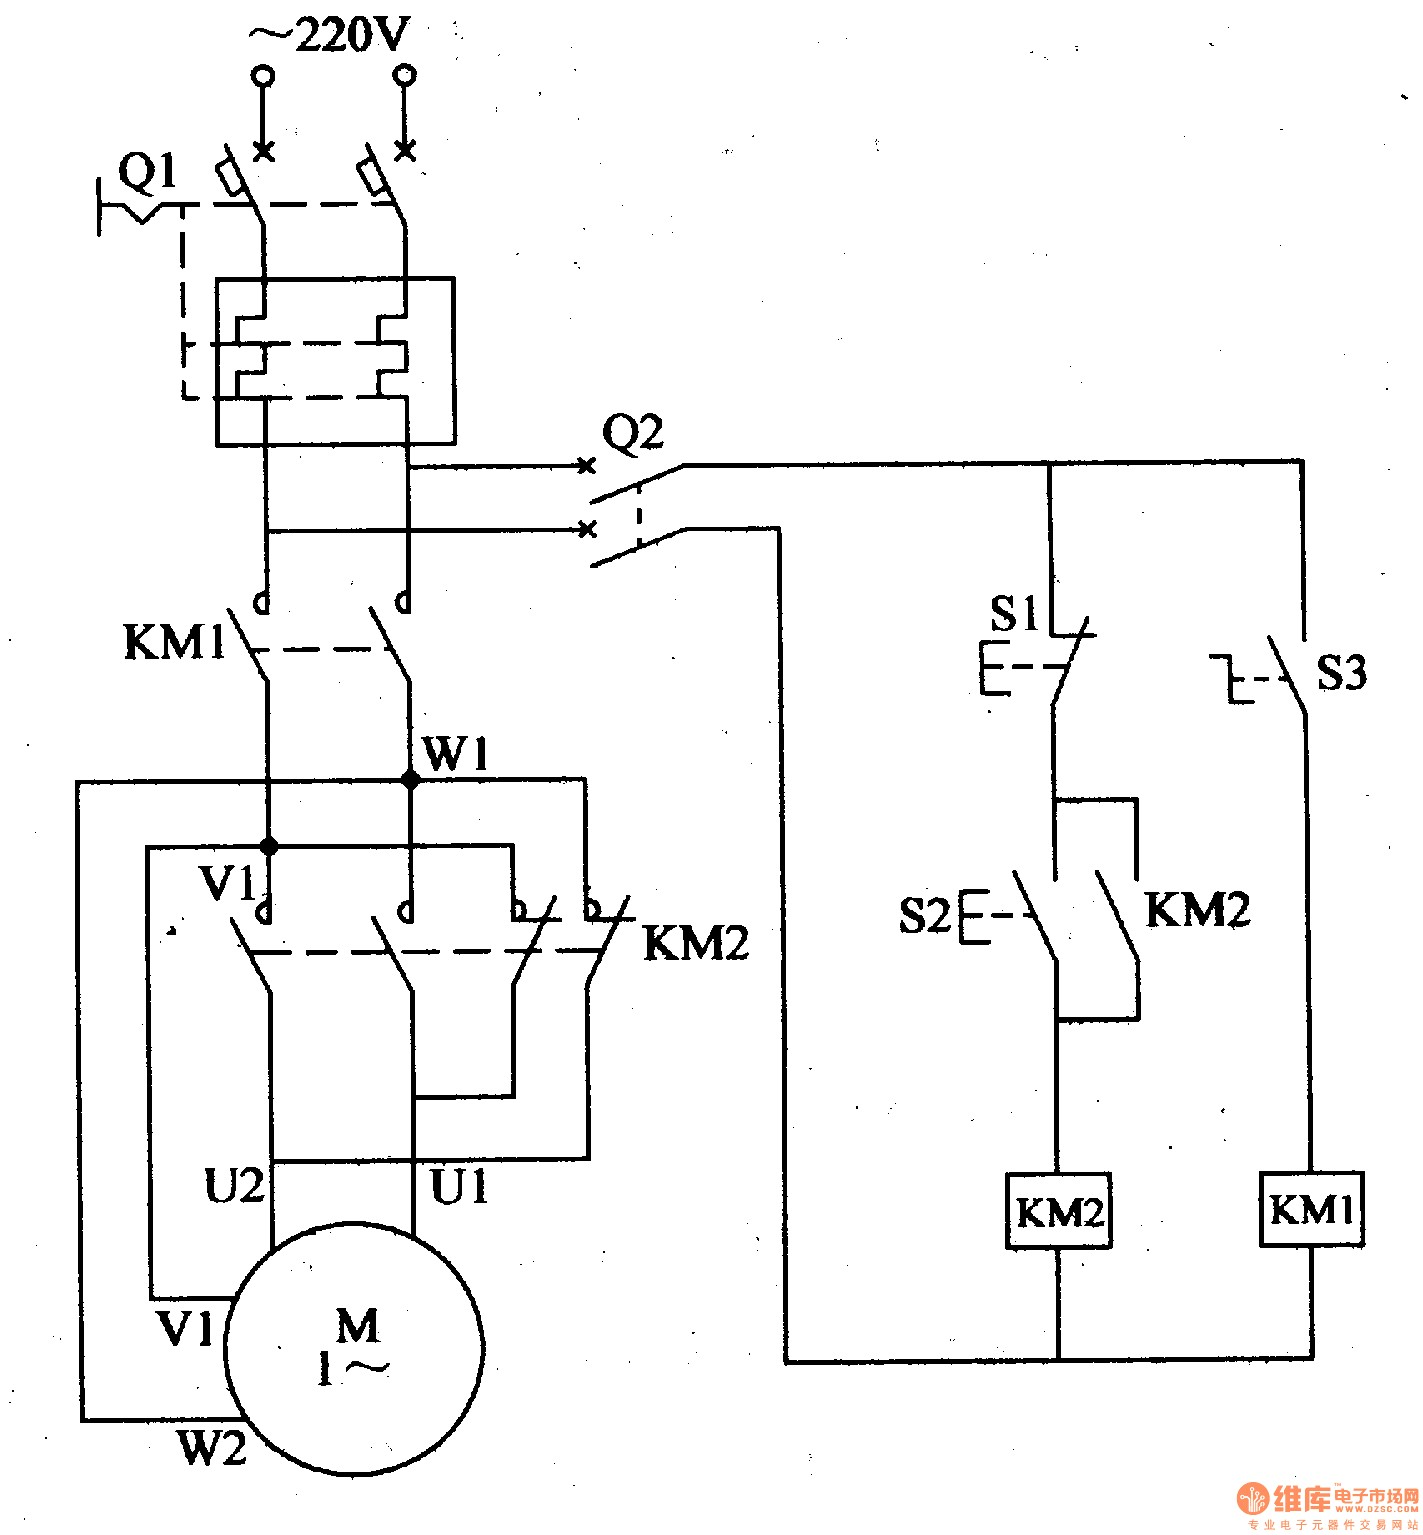 Electric Motor Wiring Diagram Circuit Single Phase ponent Control Controlled Automotive Speed Full Size Starter